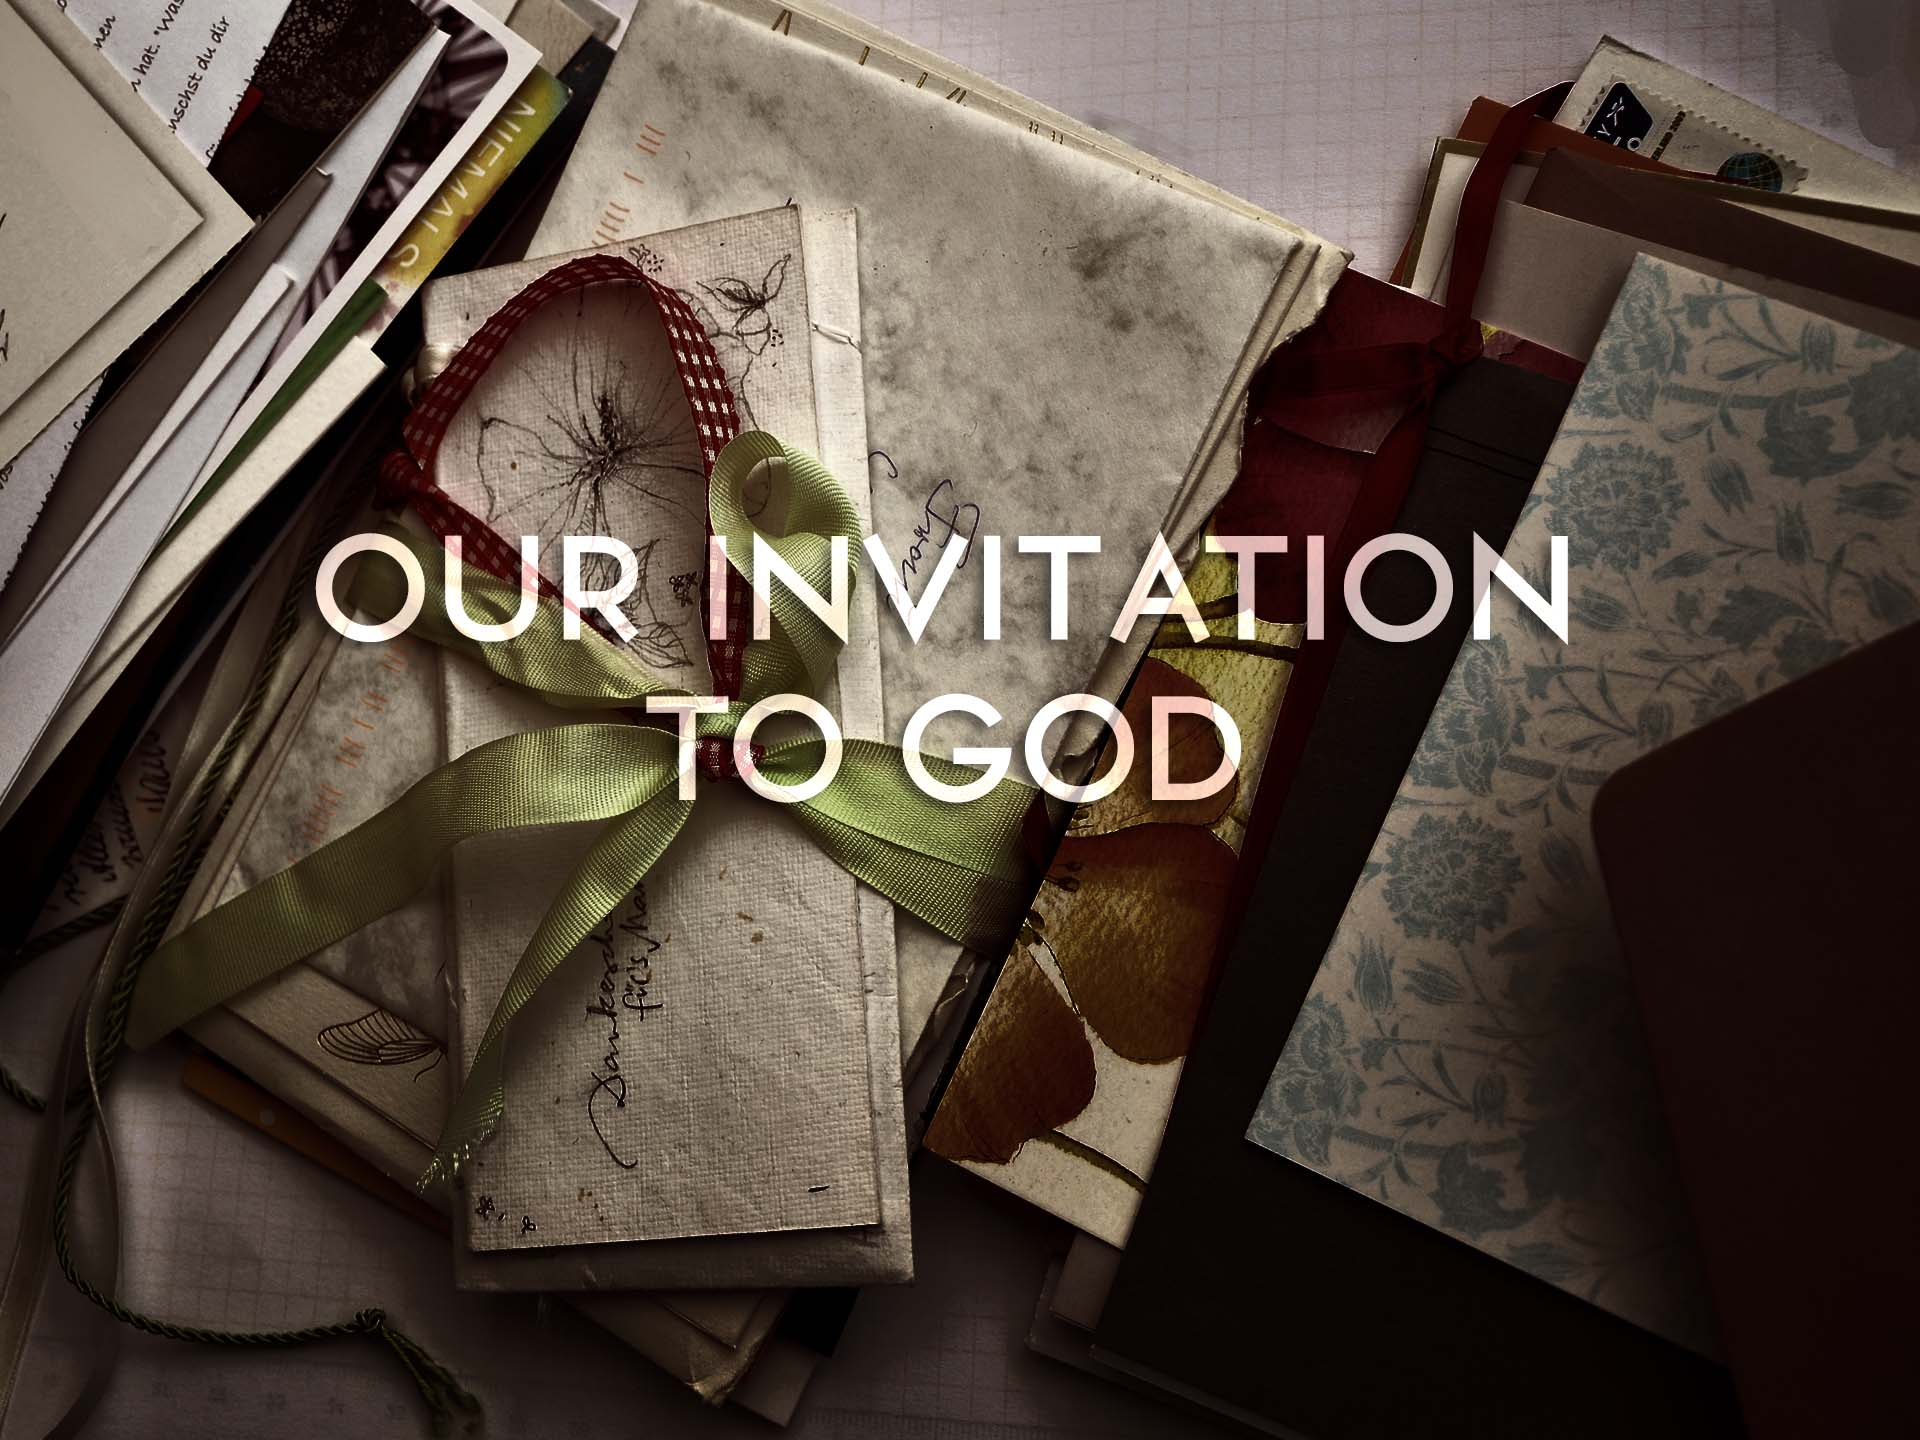 Our Invitation to God, Pt. 2